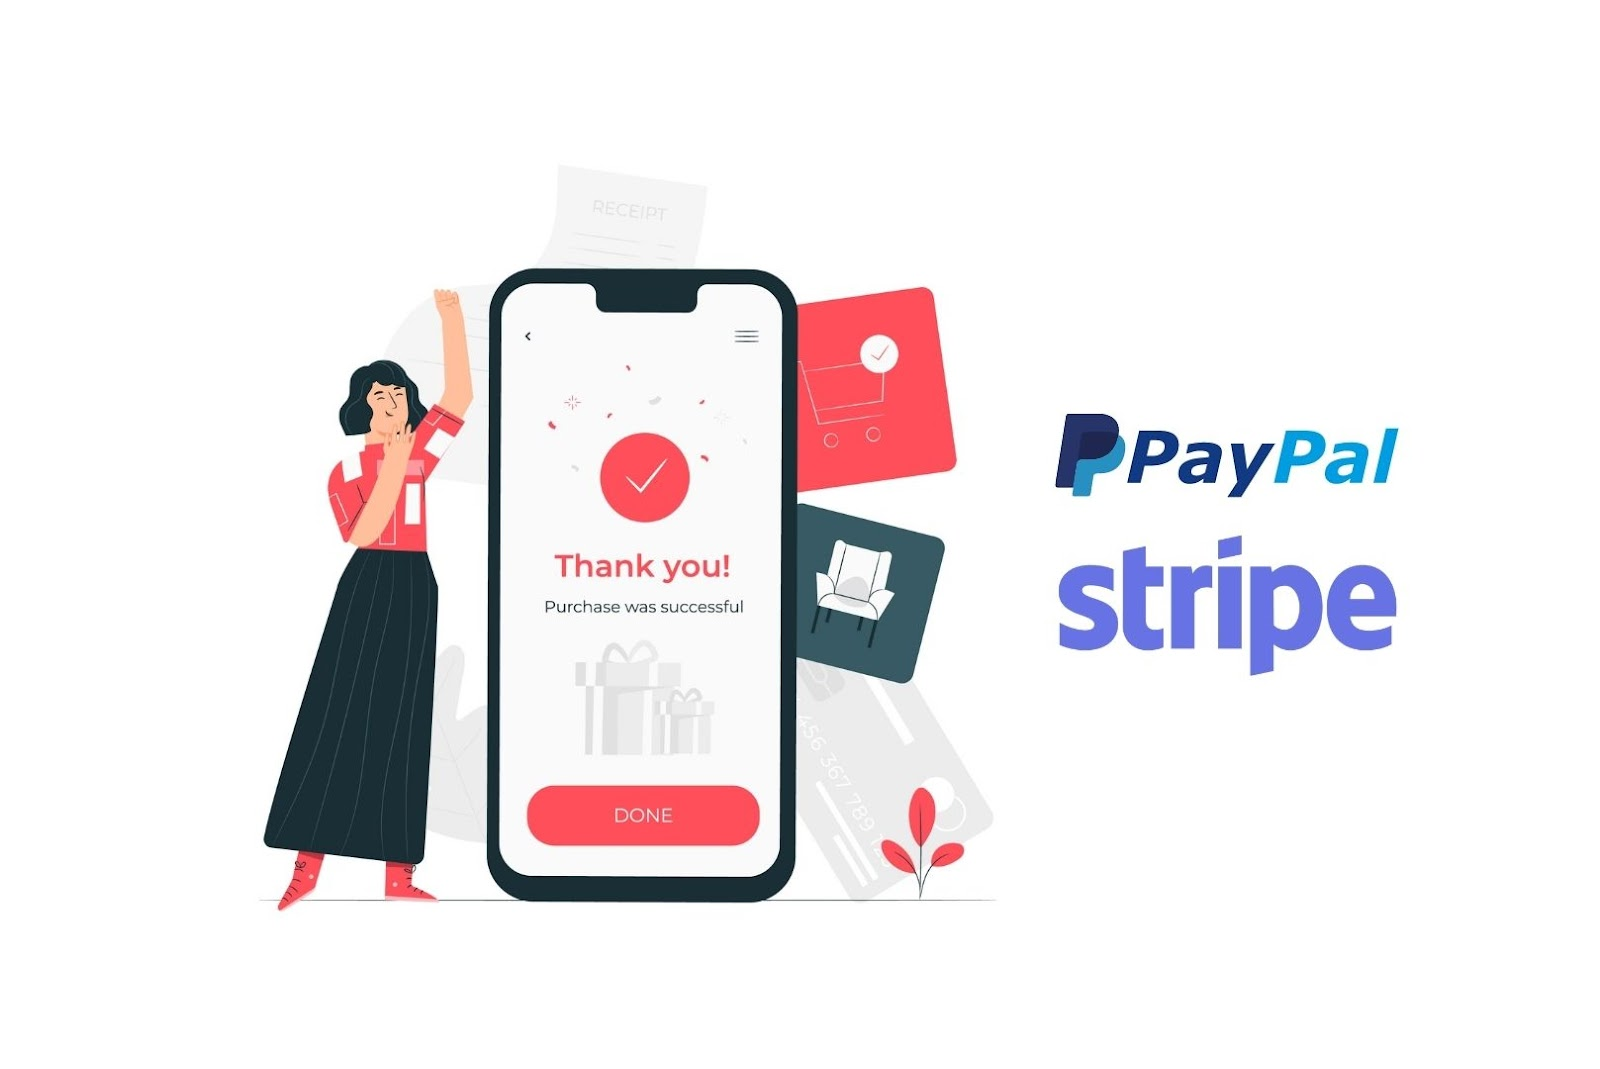 paypal and stripe for better financial transactions